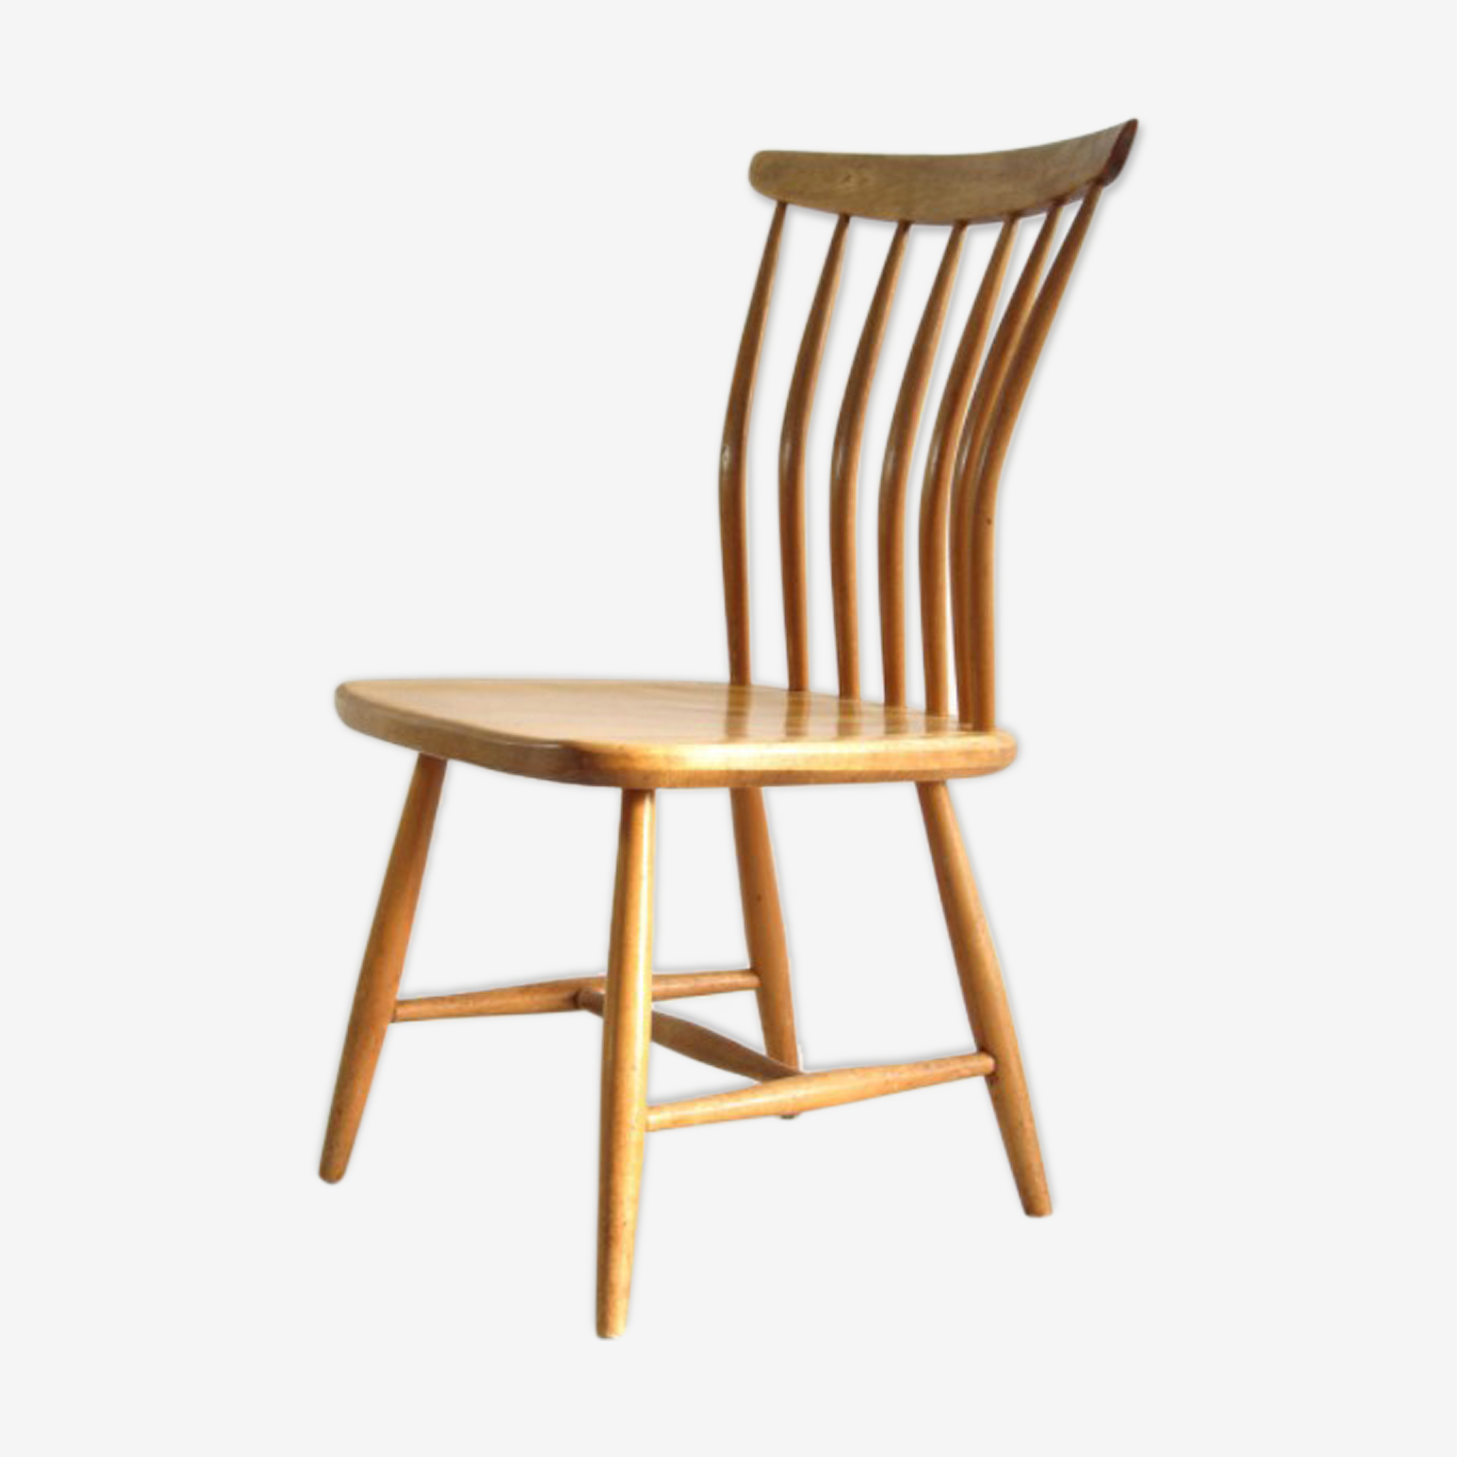 Akerblom Swedish fifties chair designed by Gunnar Eklöf